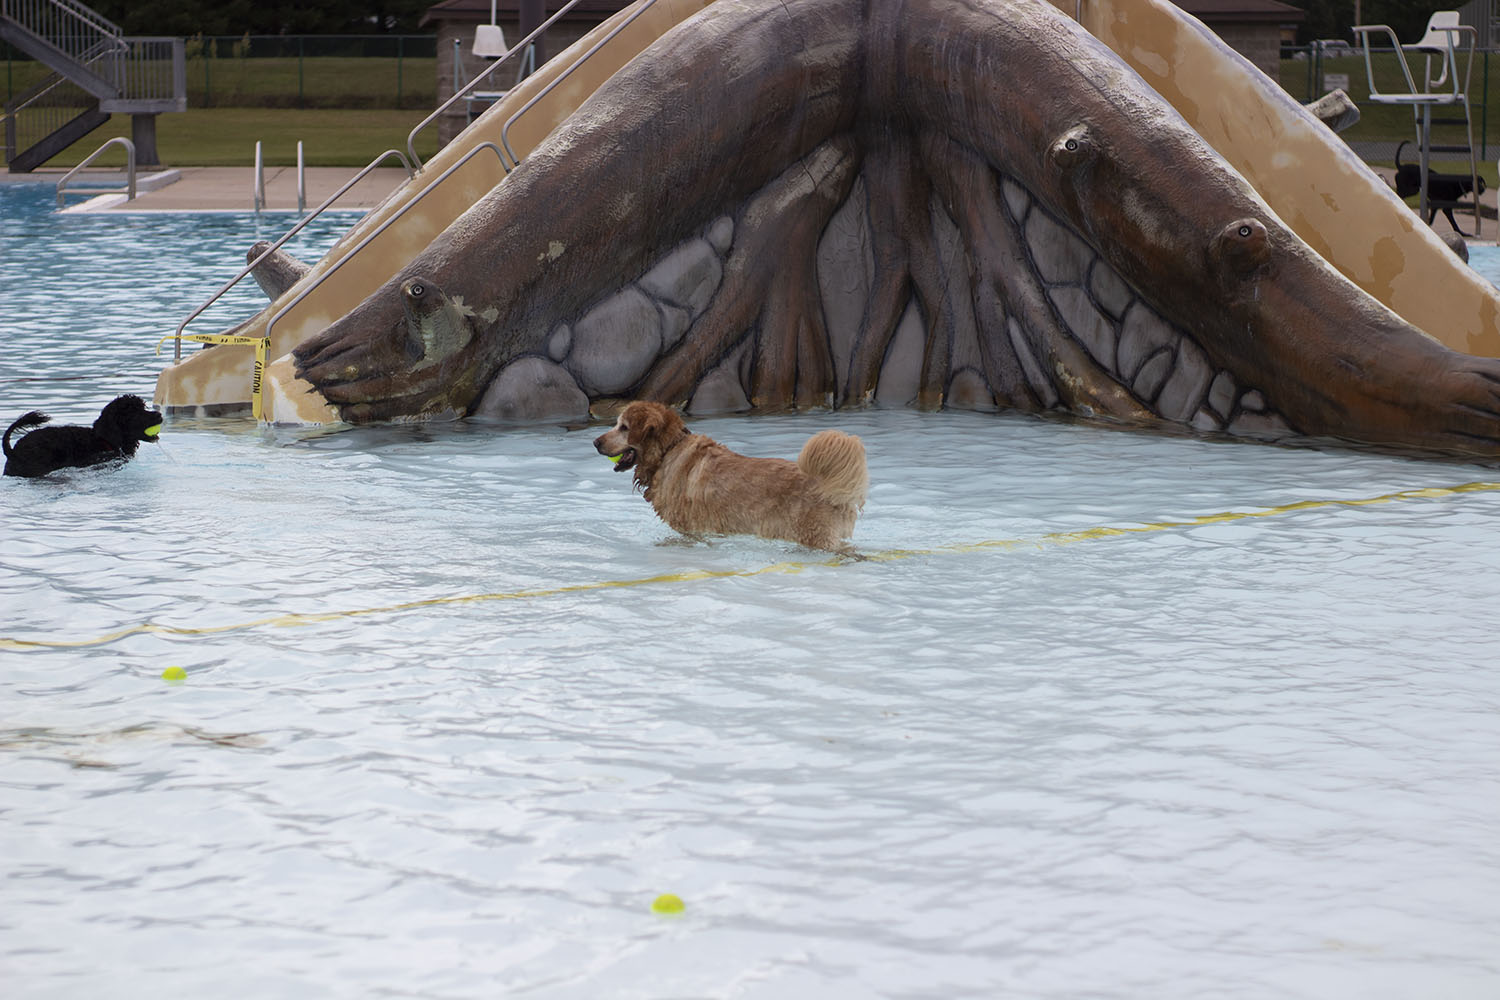 Sam%2C+the+golden+retriever%2C+wanders+aimlessly+and+takes+in+the+cool+water.